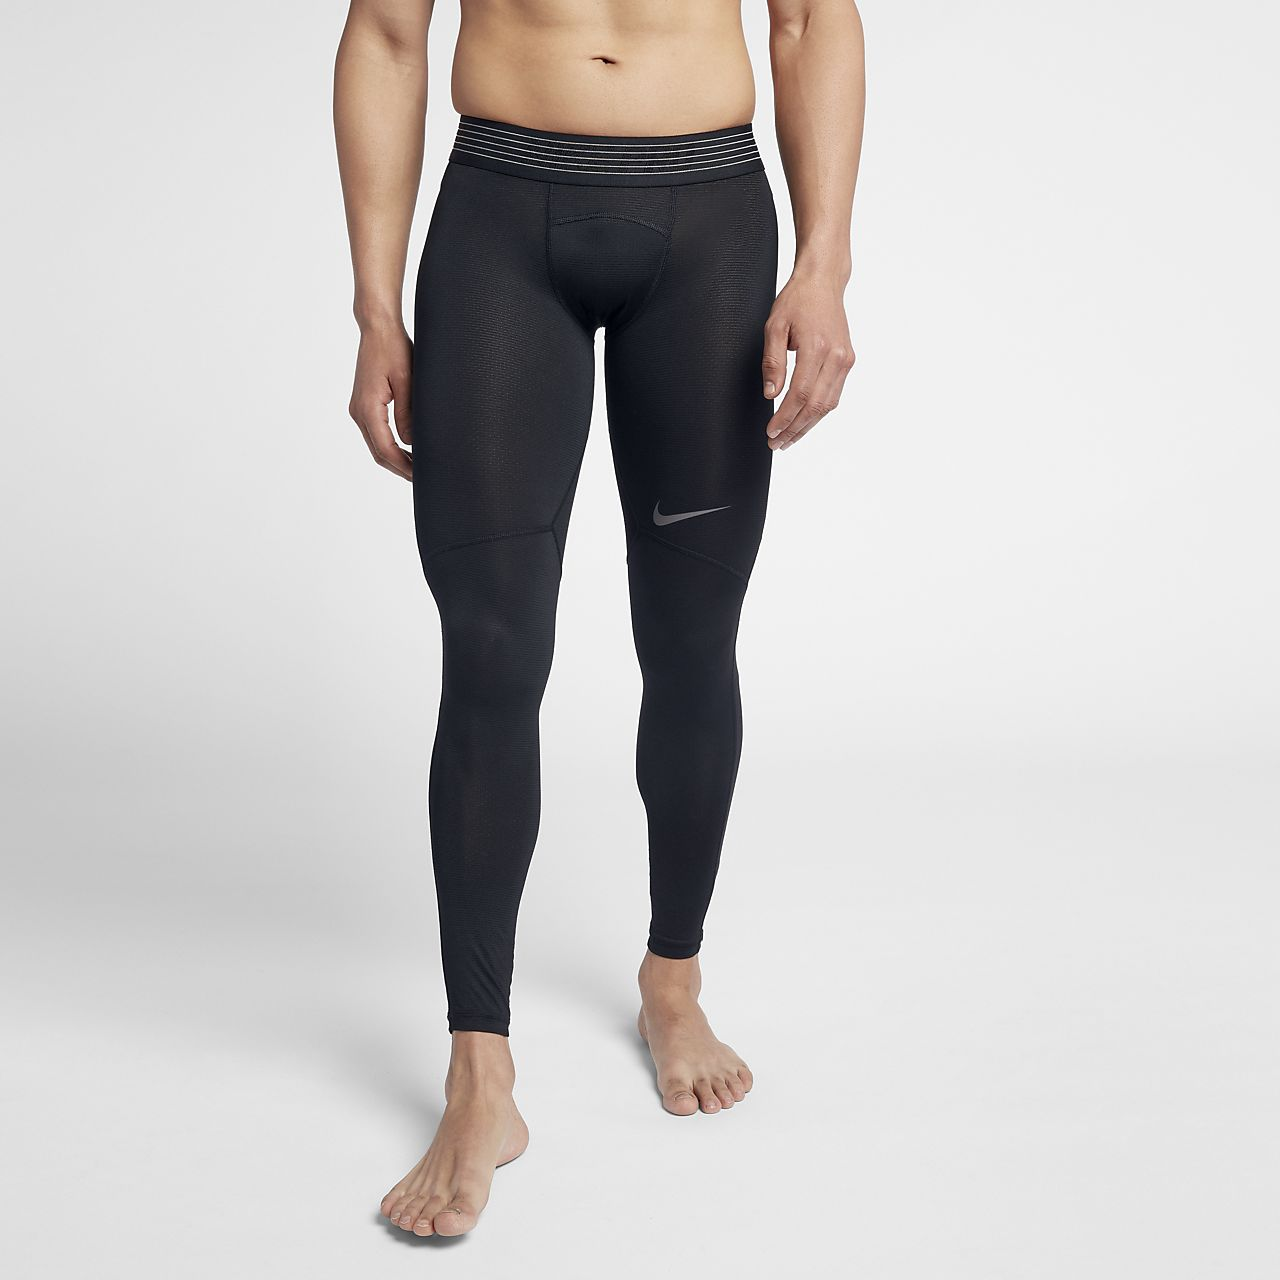 Nike Pro HyperCool Trainings-Tights für Herren